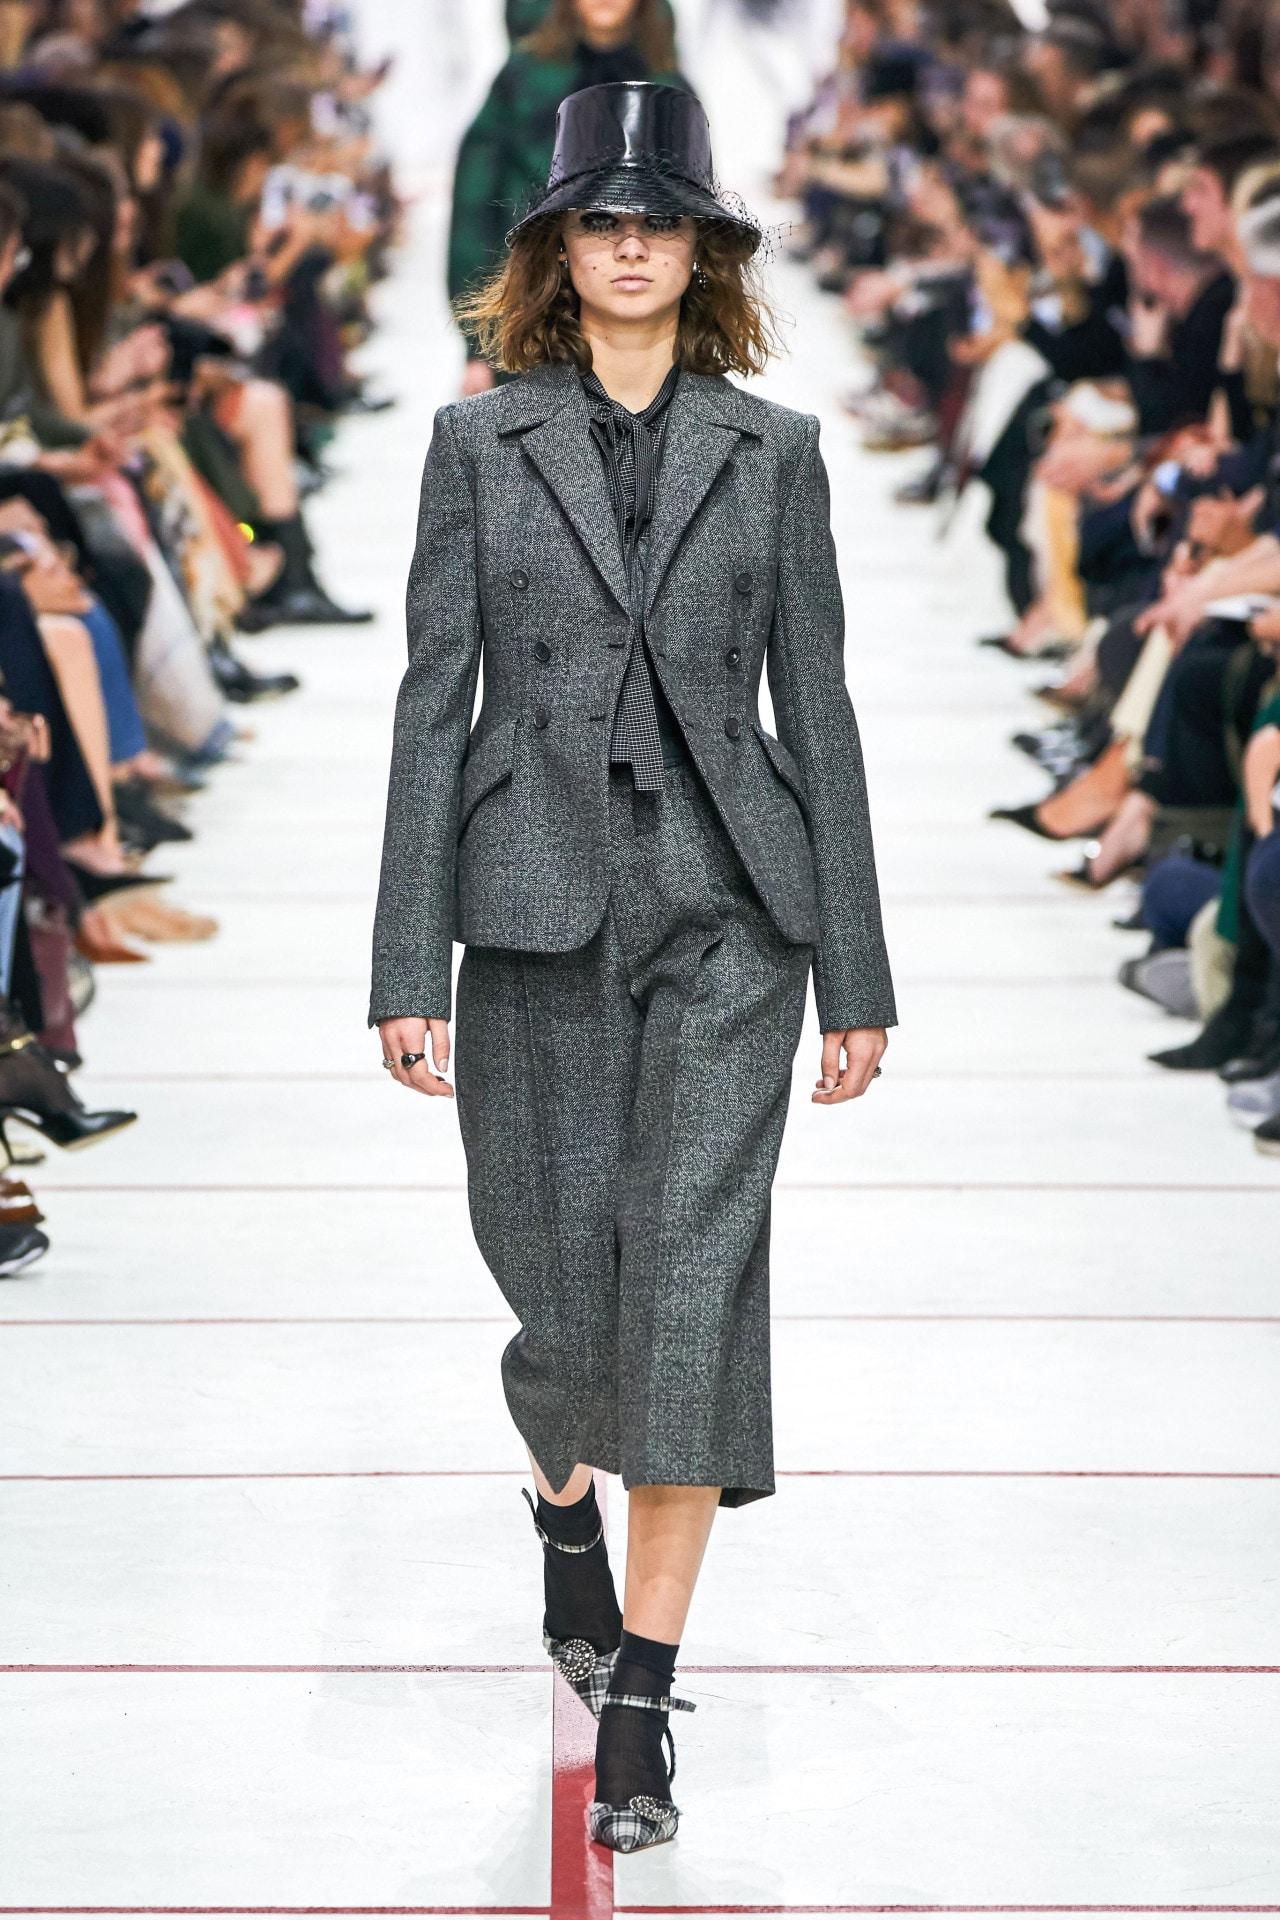 Christian Dior ready-to-wear autumn/winter '19/'20. Image credit: Gorunway.com